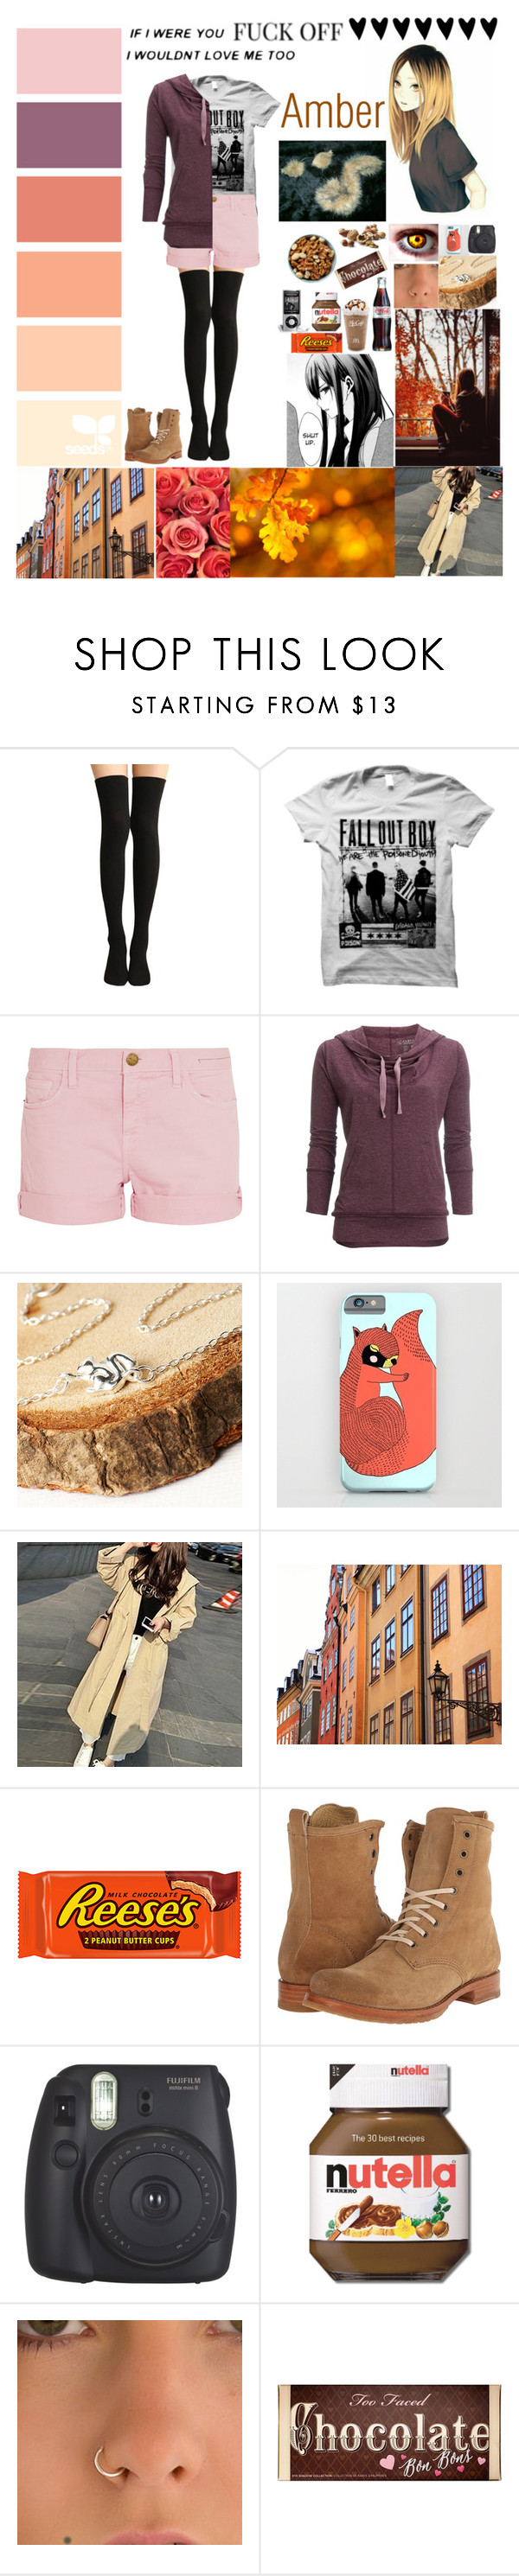 """Amber"" by silentdoll ❤ liked on Polyvore featuring Current/Elliott, Carve Designs, Hooded Trench, Frye, Fujifilm and Too Faced Cosmetics"